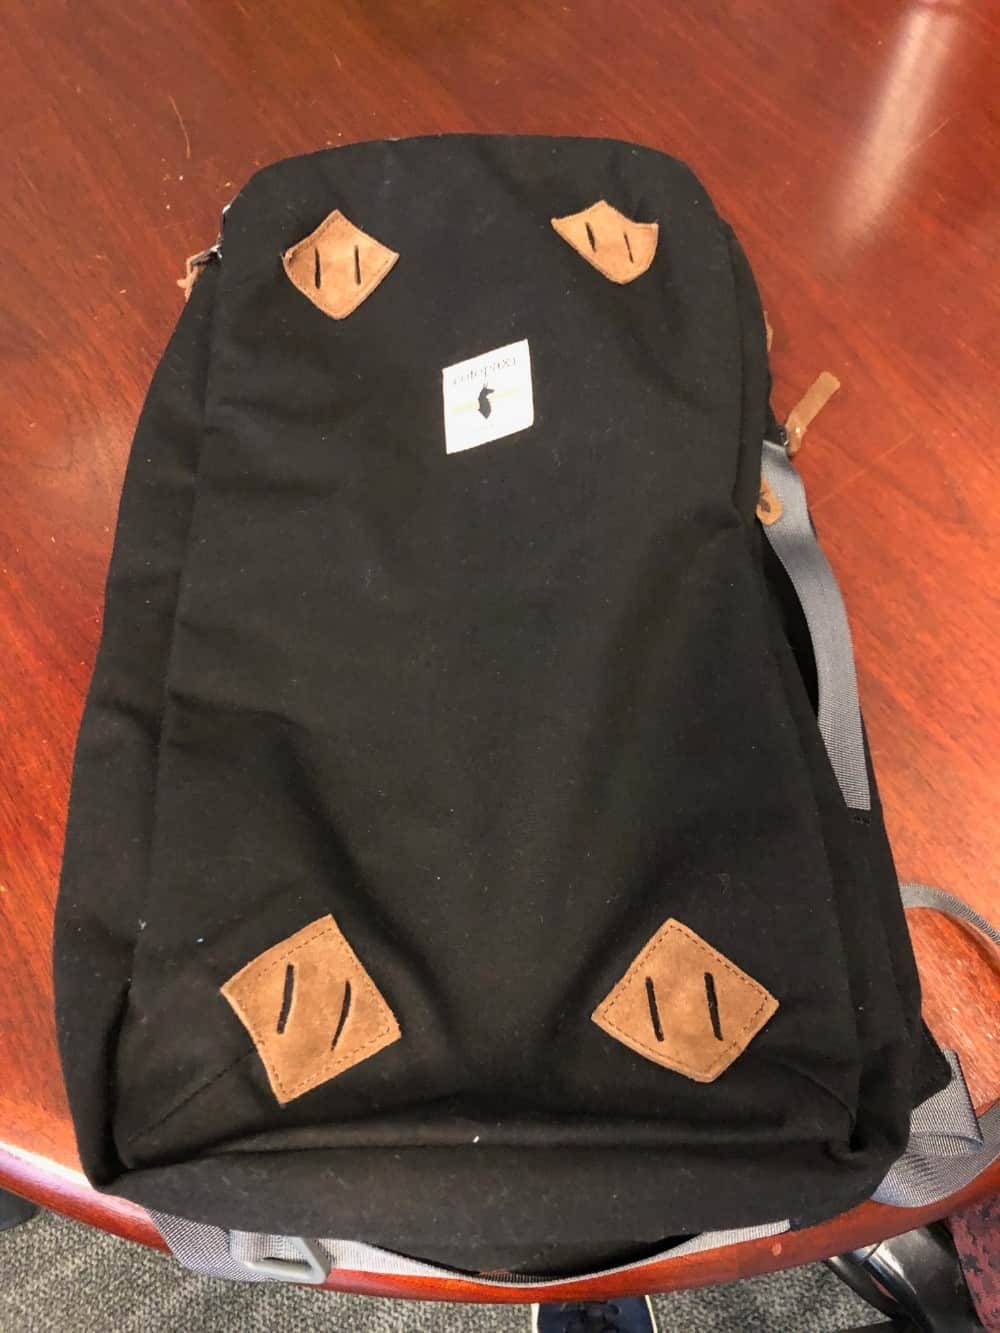 Rear view of the Cotopaxi Nazca backpack